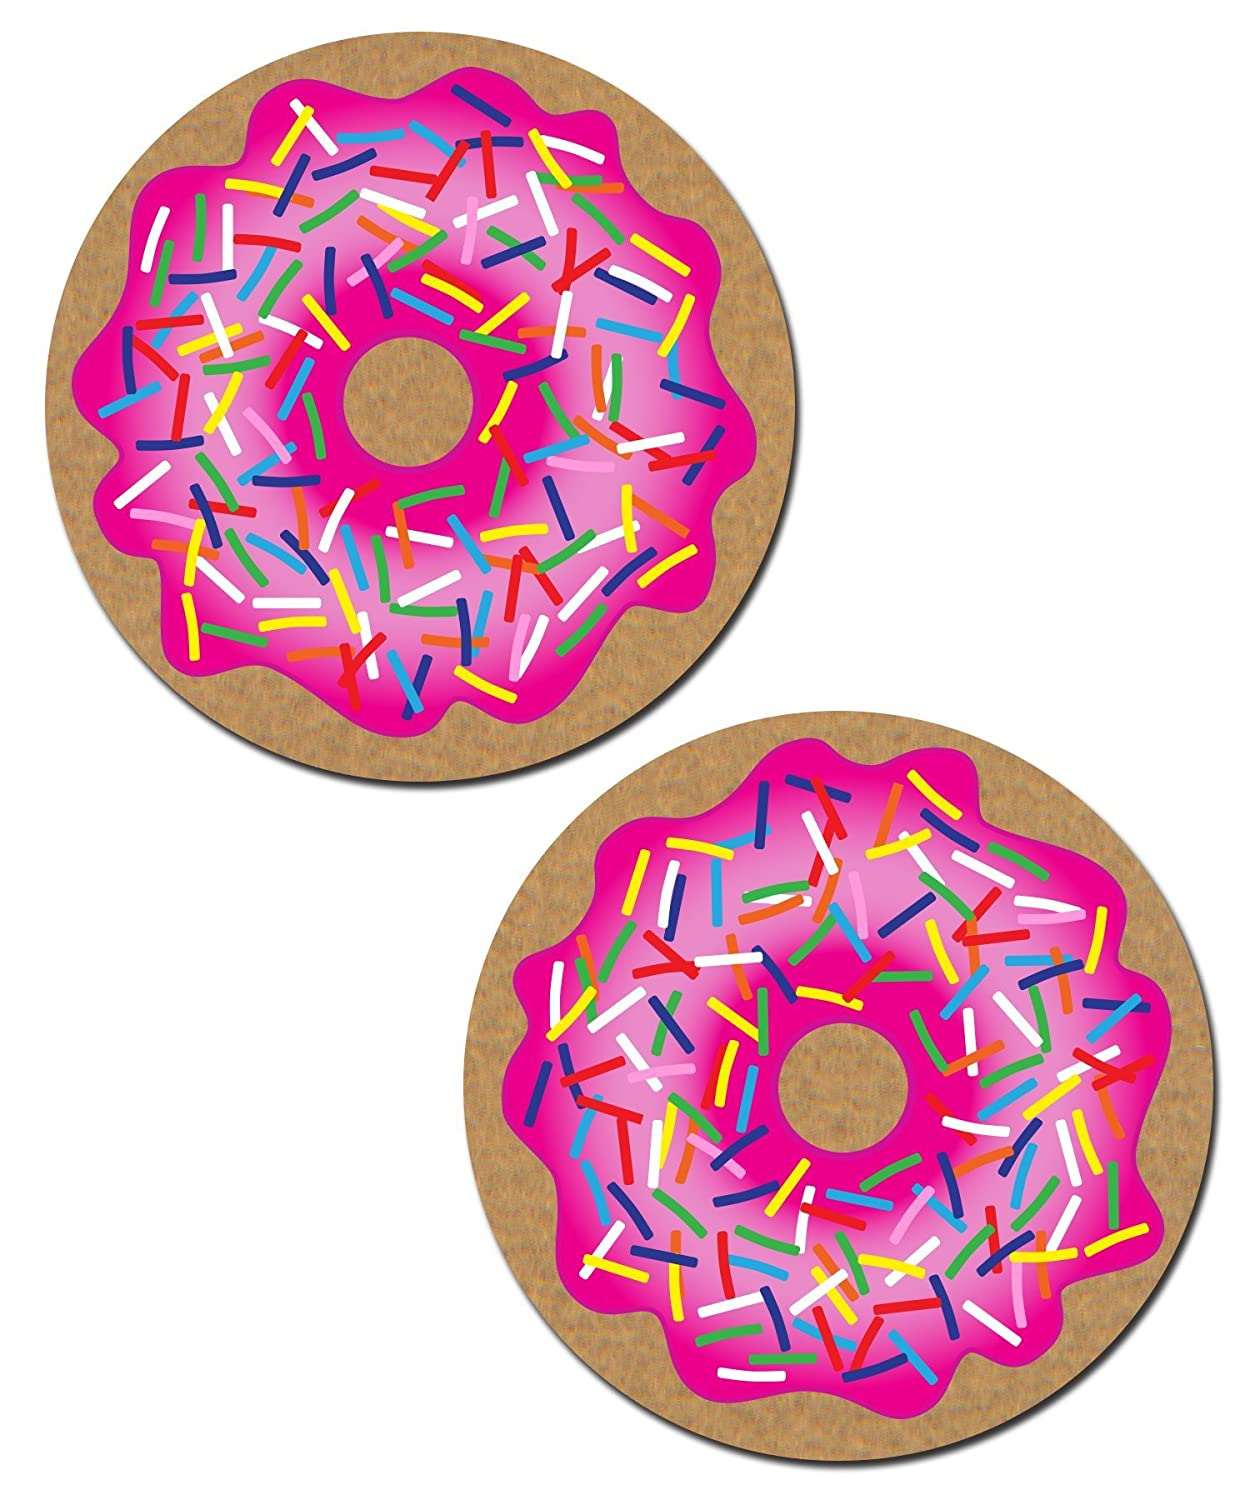 Pastease Women's Donut with Pink Frosting and Rainbow Sprinkles Nipple Pasties o/s DNT-PK